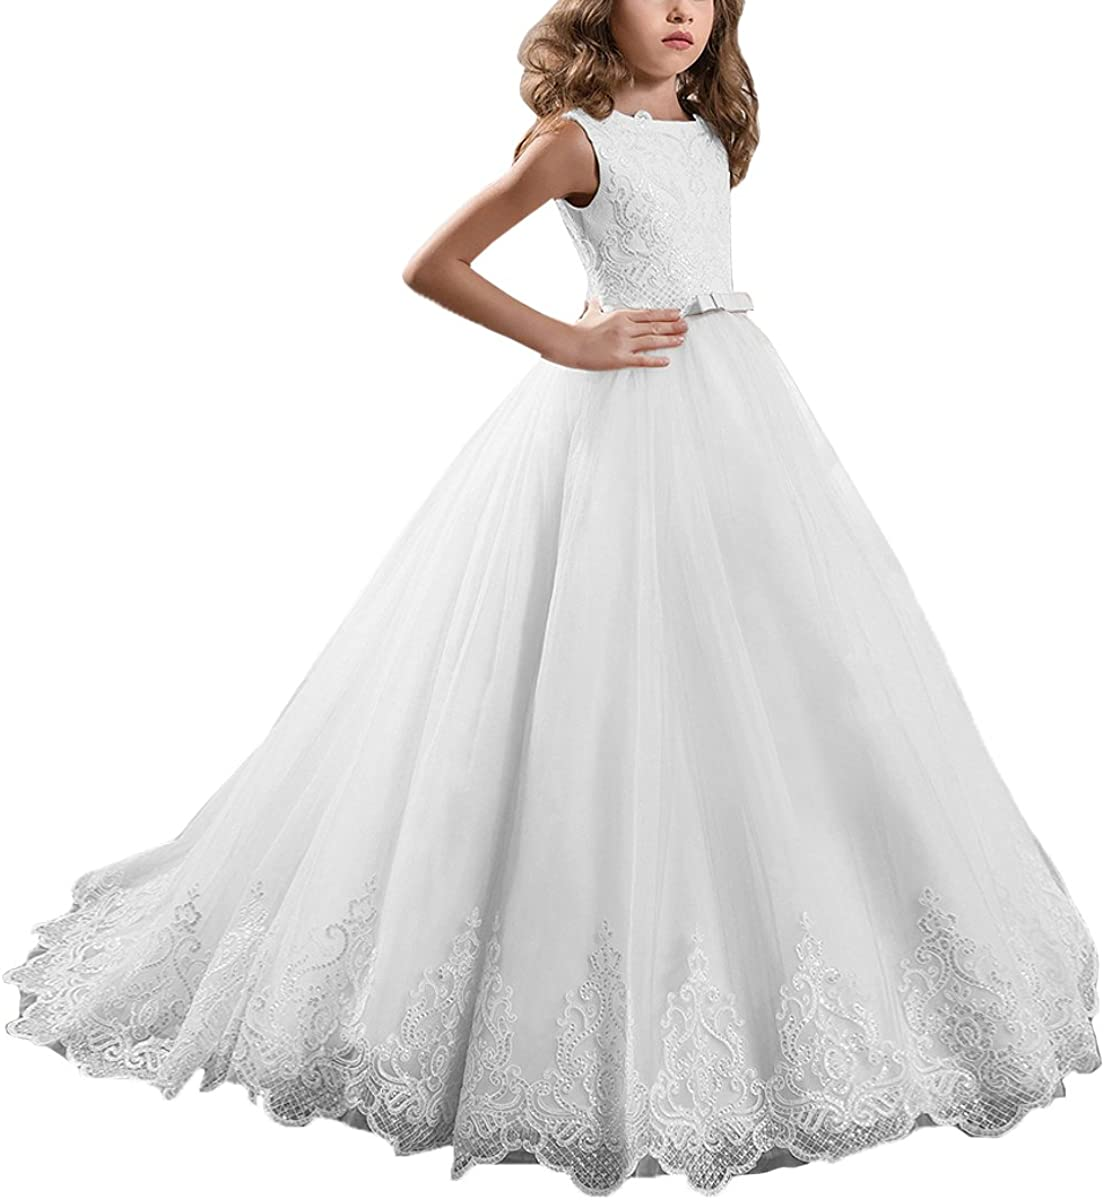 Abaowedding Max 66% OFF Long Lace free shipping Sequin Flower Girl Pageant Birthday Commun